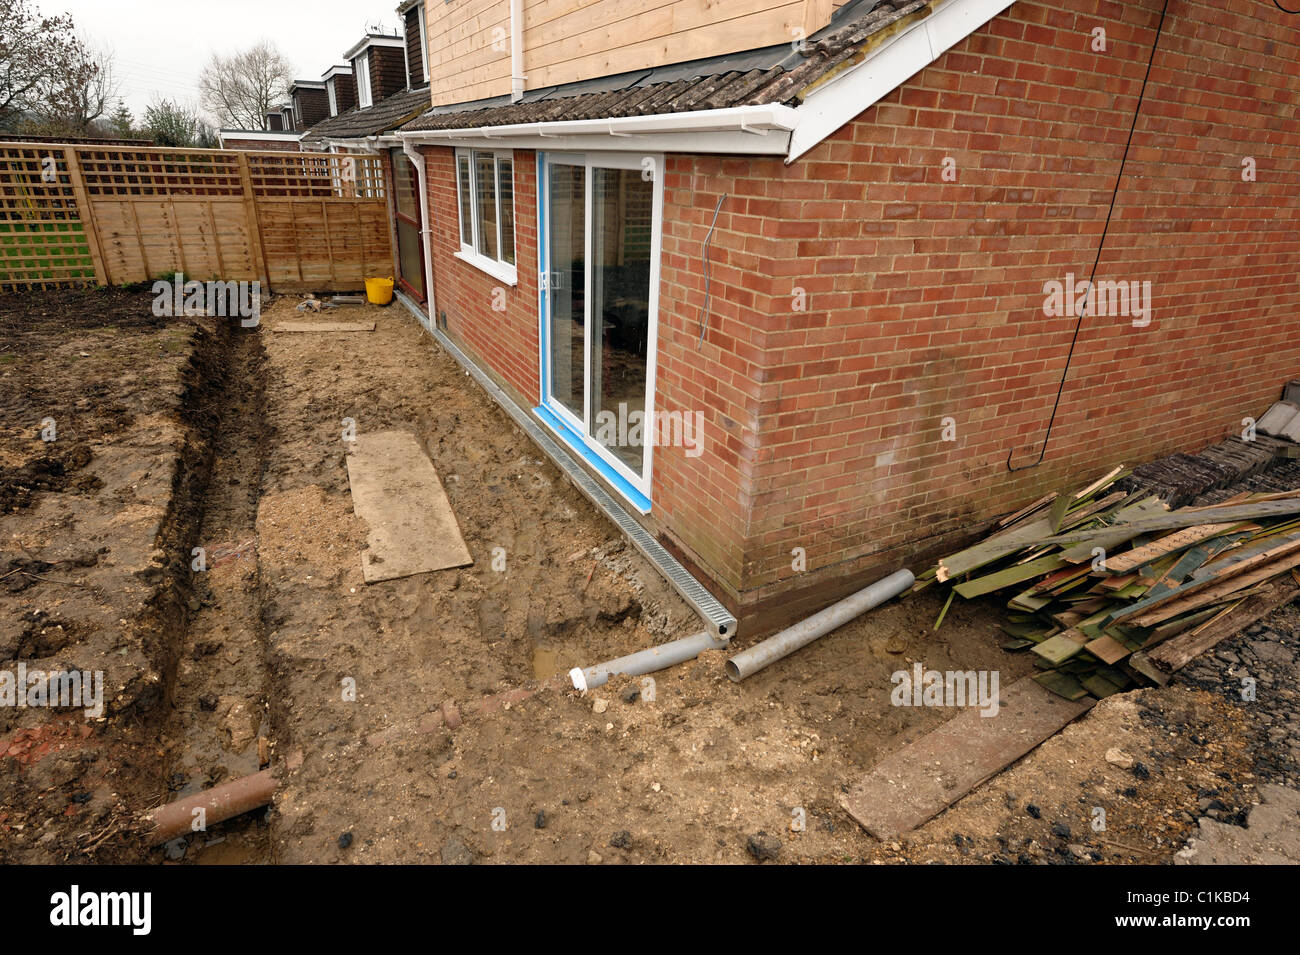 House extension building site - Stock Image